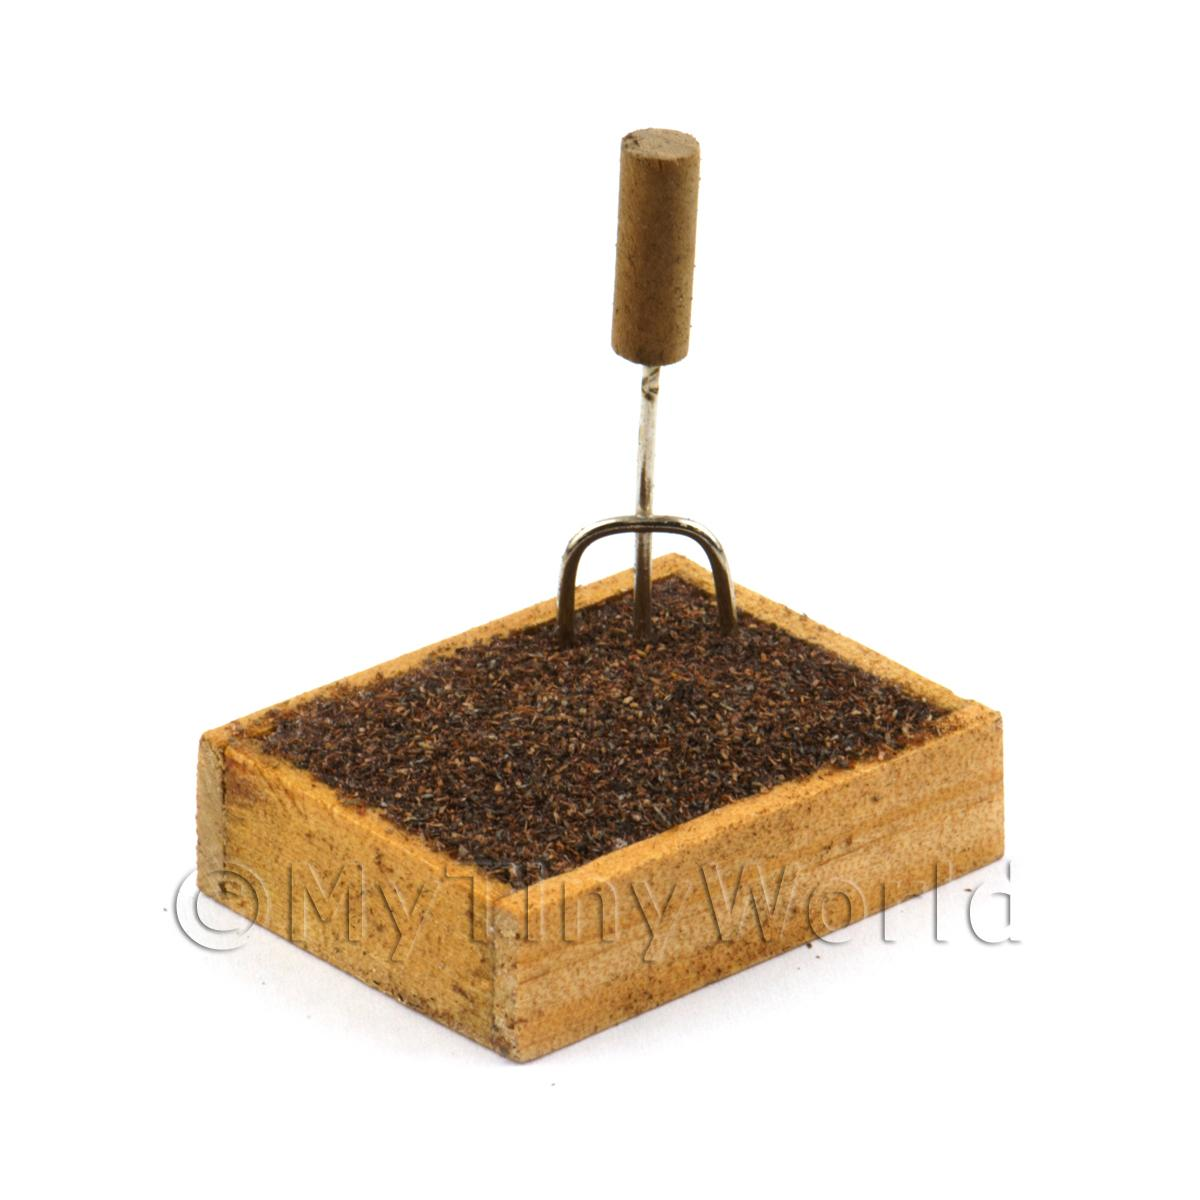 Miniature Garden Wooden Crate With Compost And Small Fork